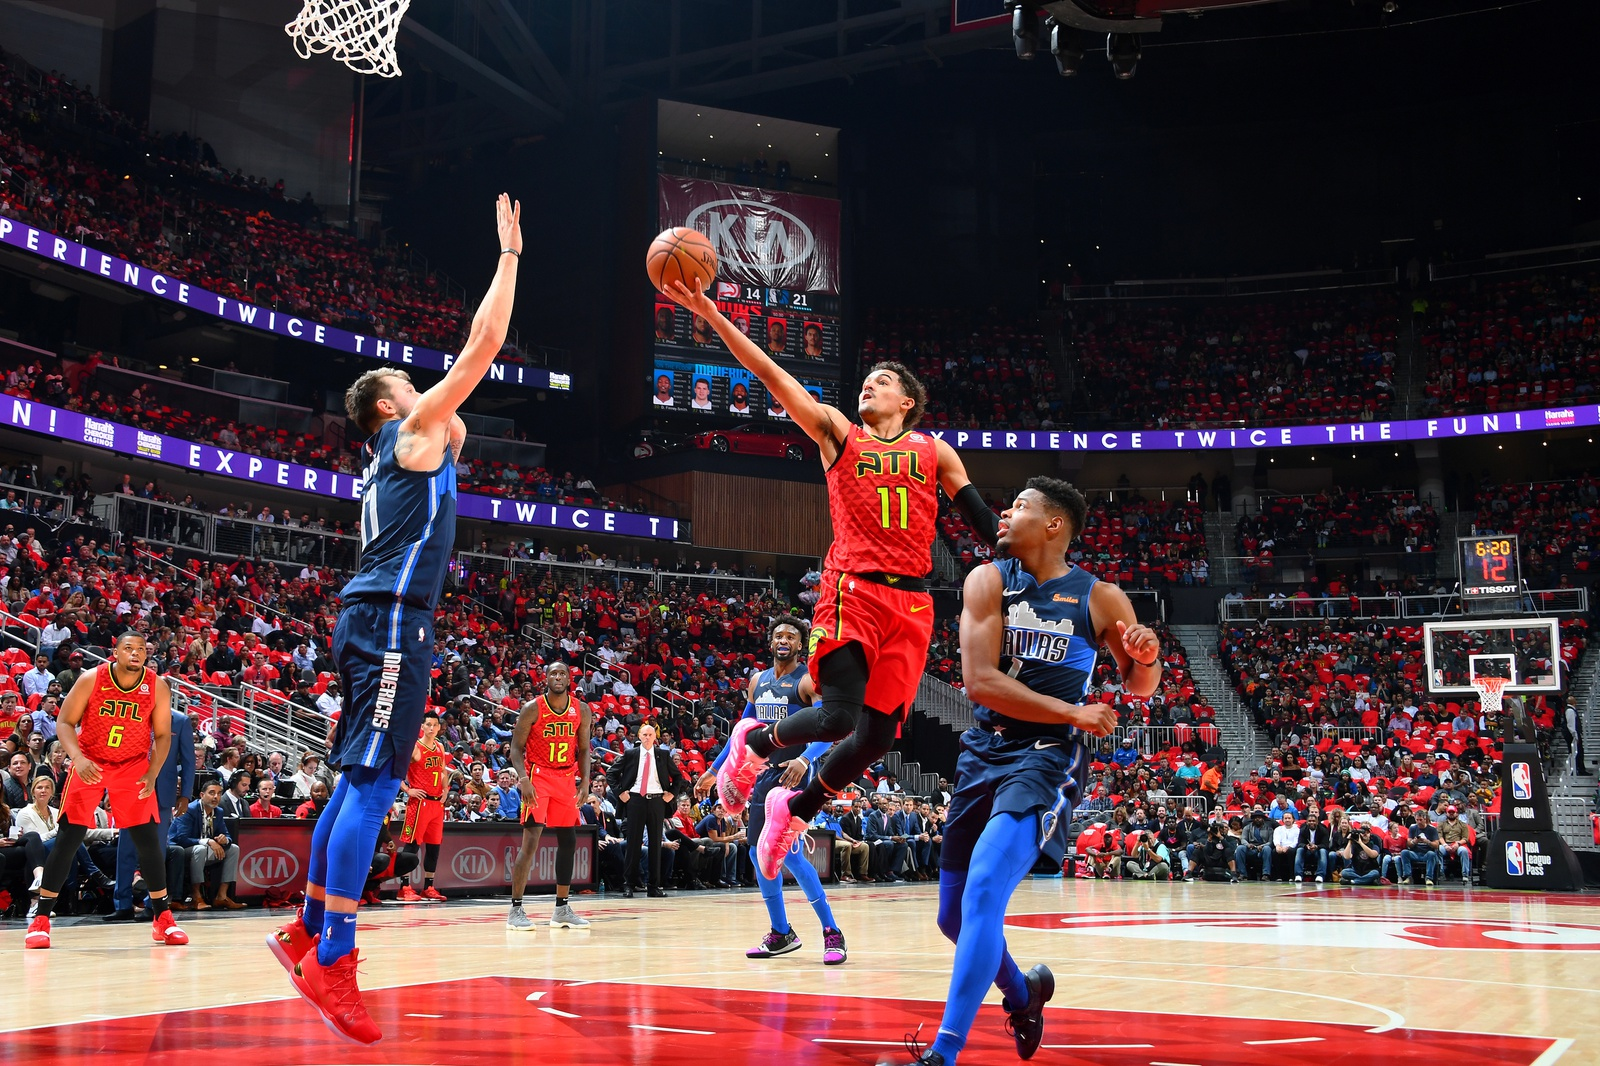 Luka Doncic #77 of the Dallas Mavericks contests the shot by Trae Young #11 of the Atlanta Hawks on October 24, 2018 at State Farm Arena in Atlanta, Georgia